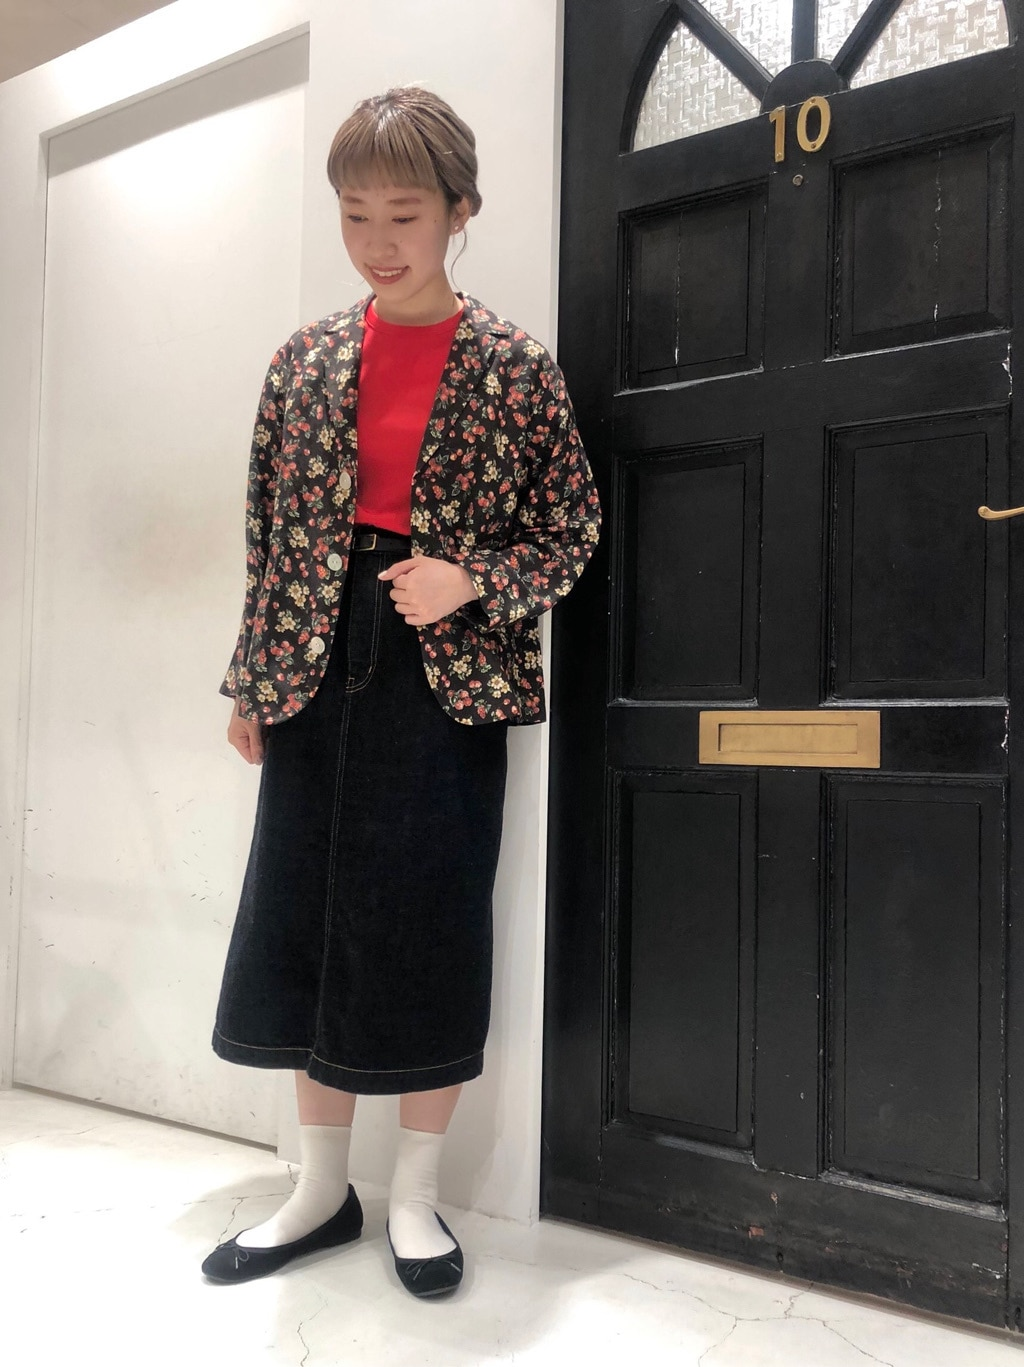 Dot and Stripes CHILD WOMAN ルクアイーレ 身長:157cm 2020.08.01